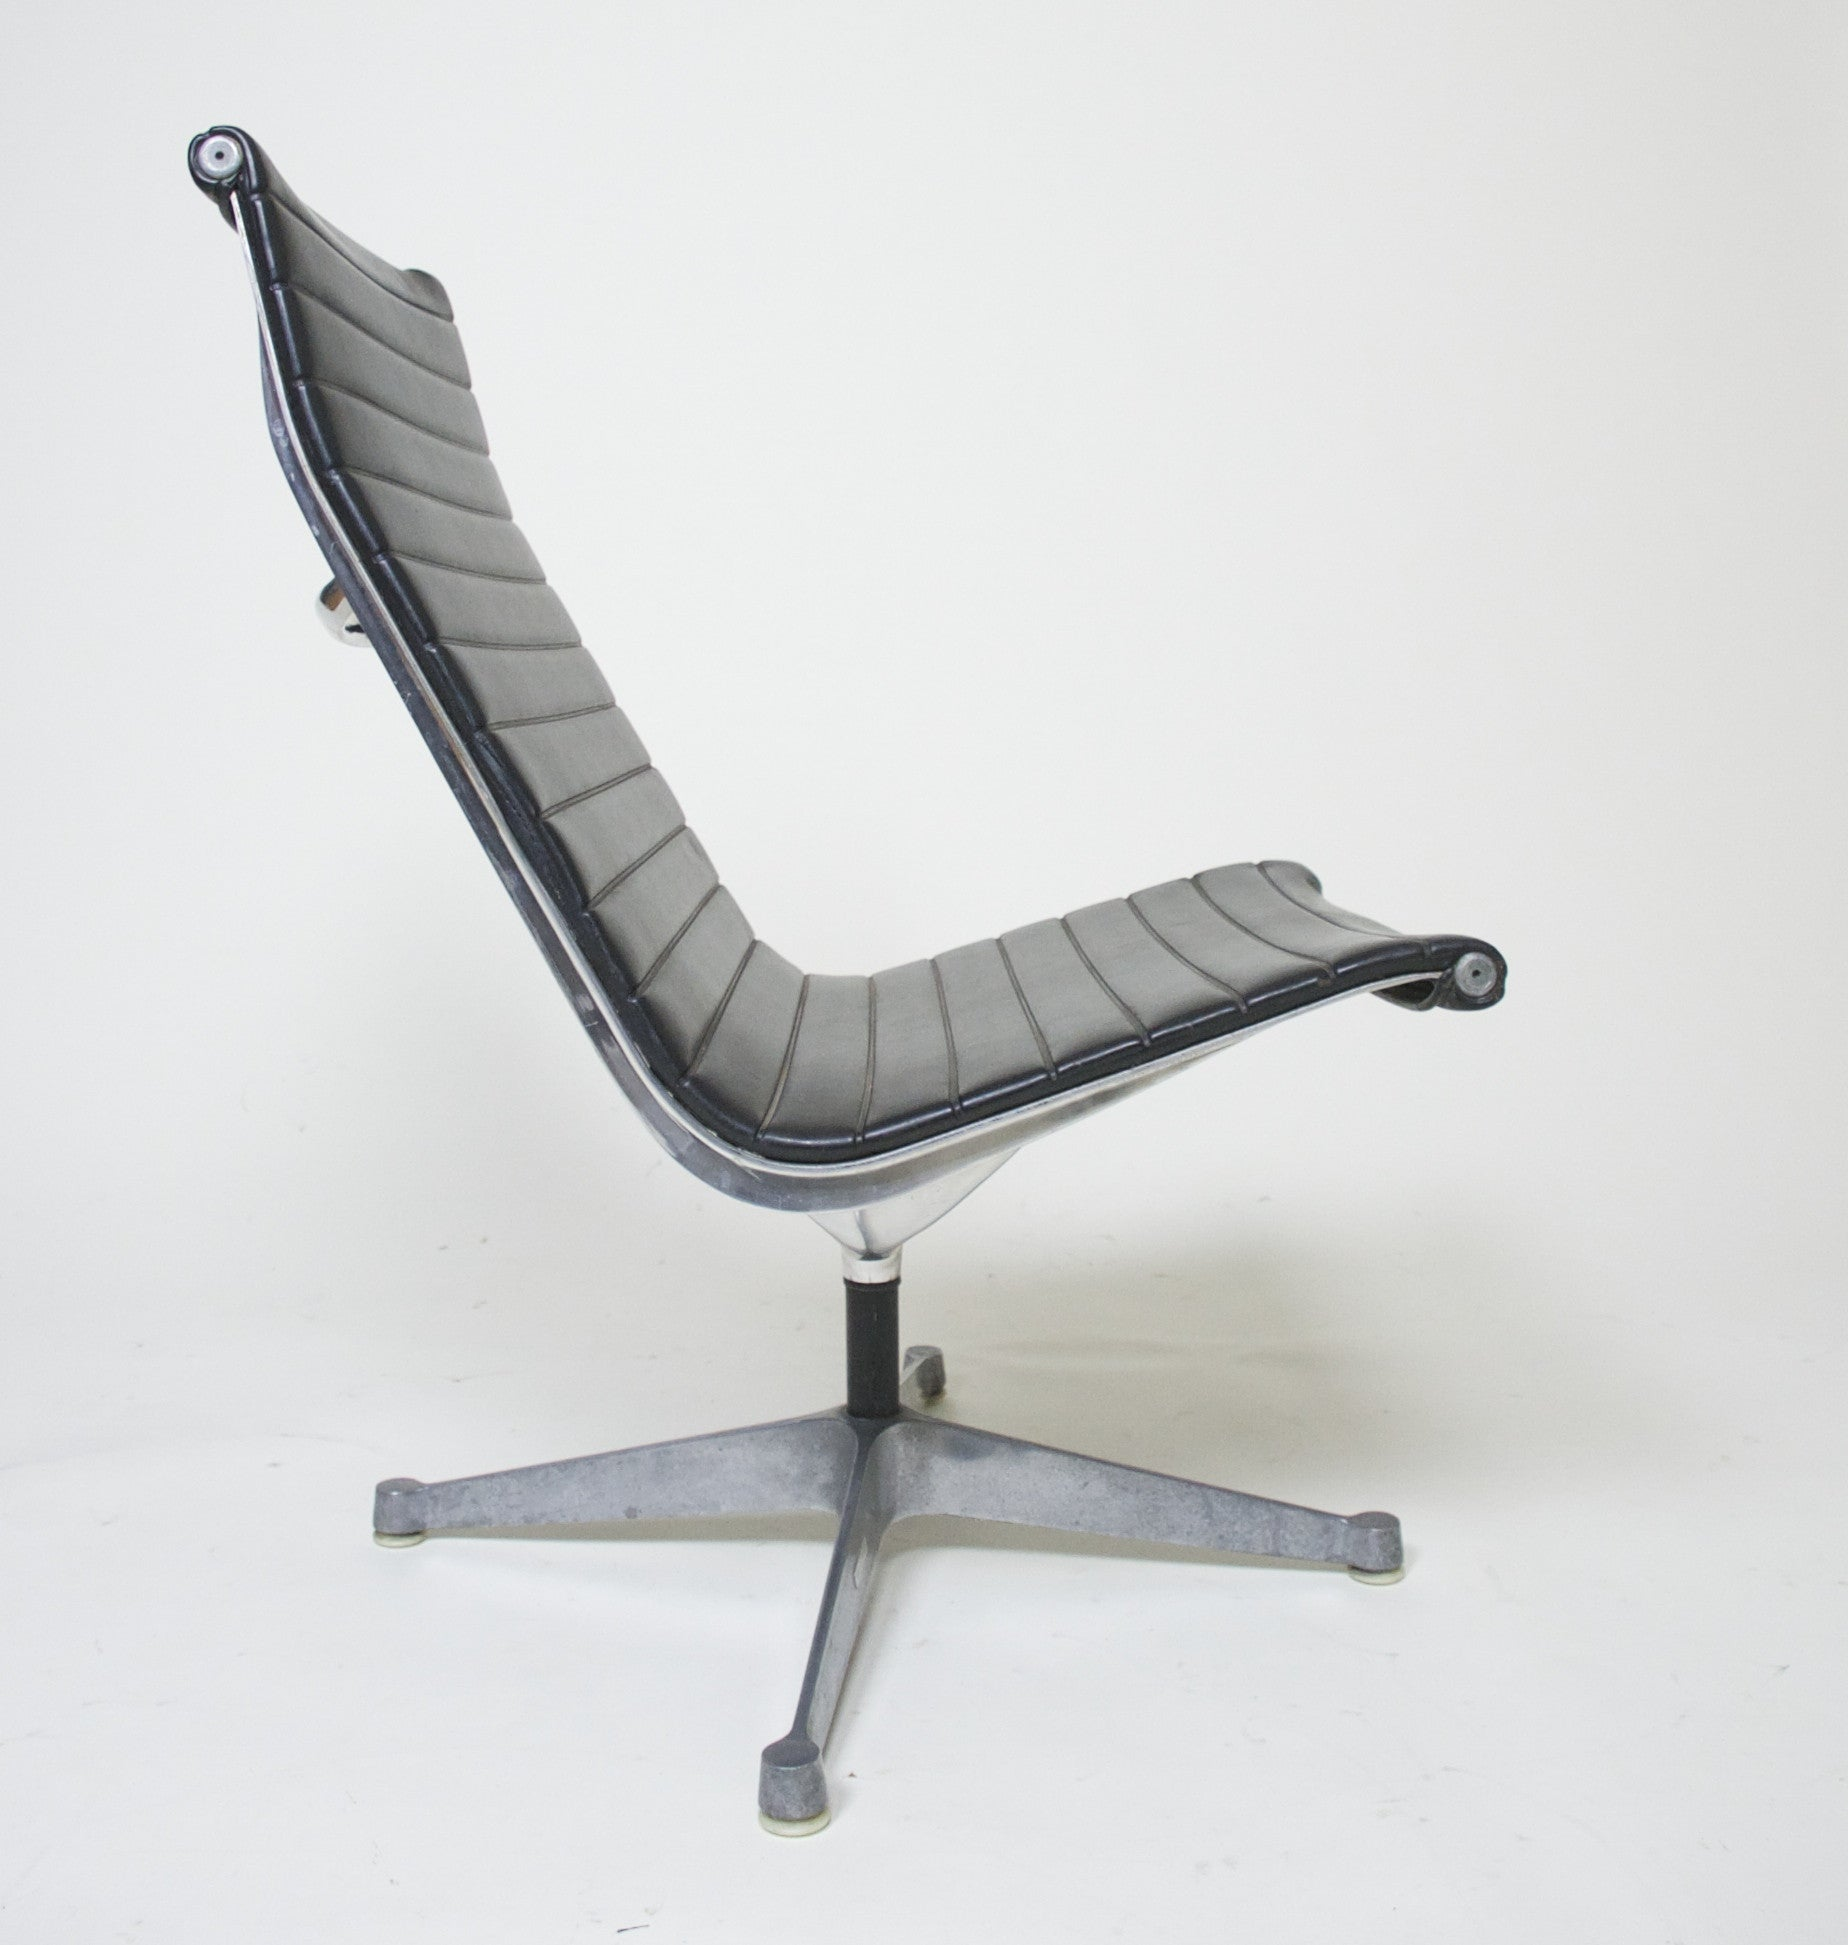 SOLD Eames Herman Miller Aluminum Group Lounge Chair Armless, Quantity 4